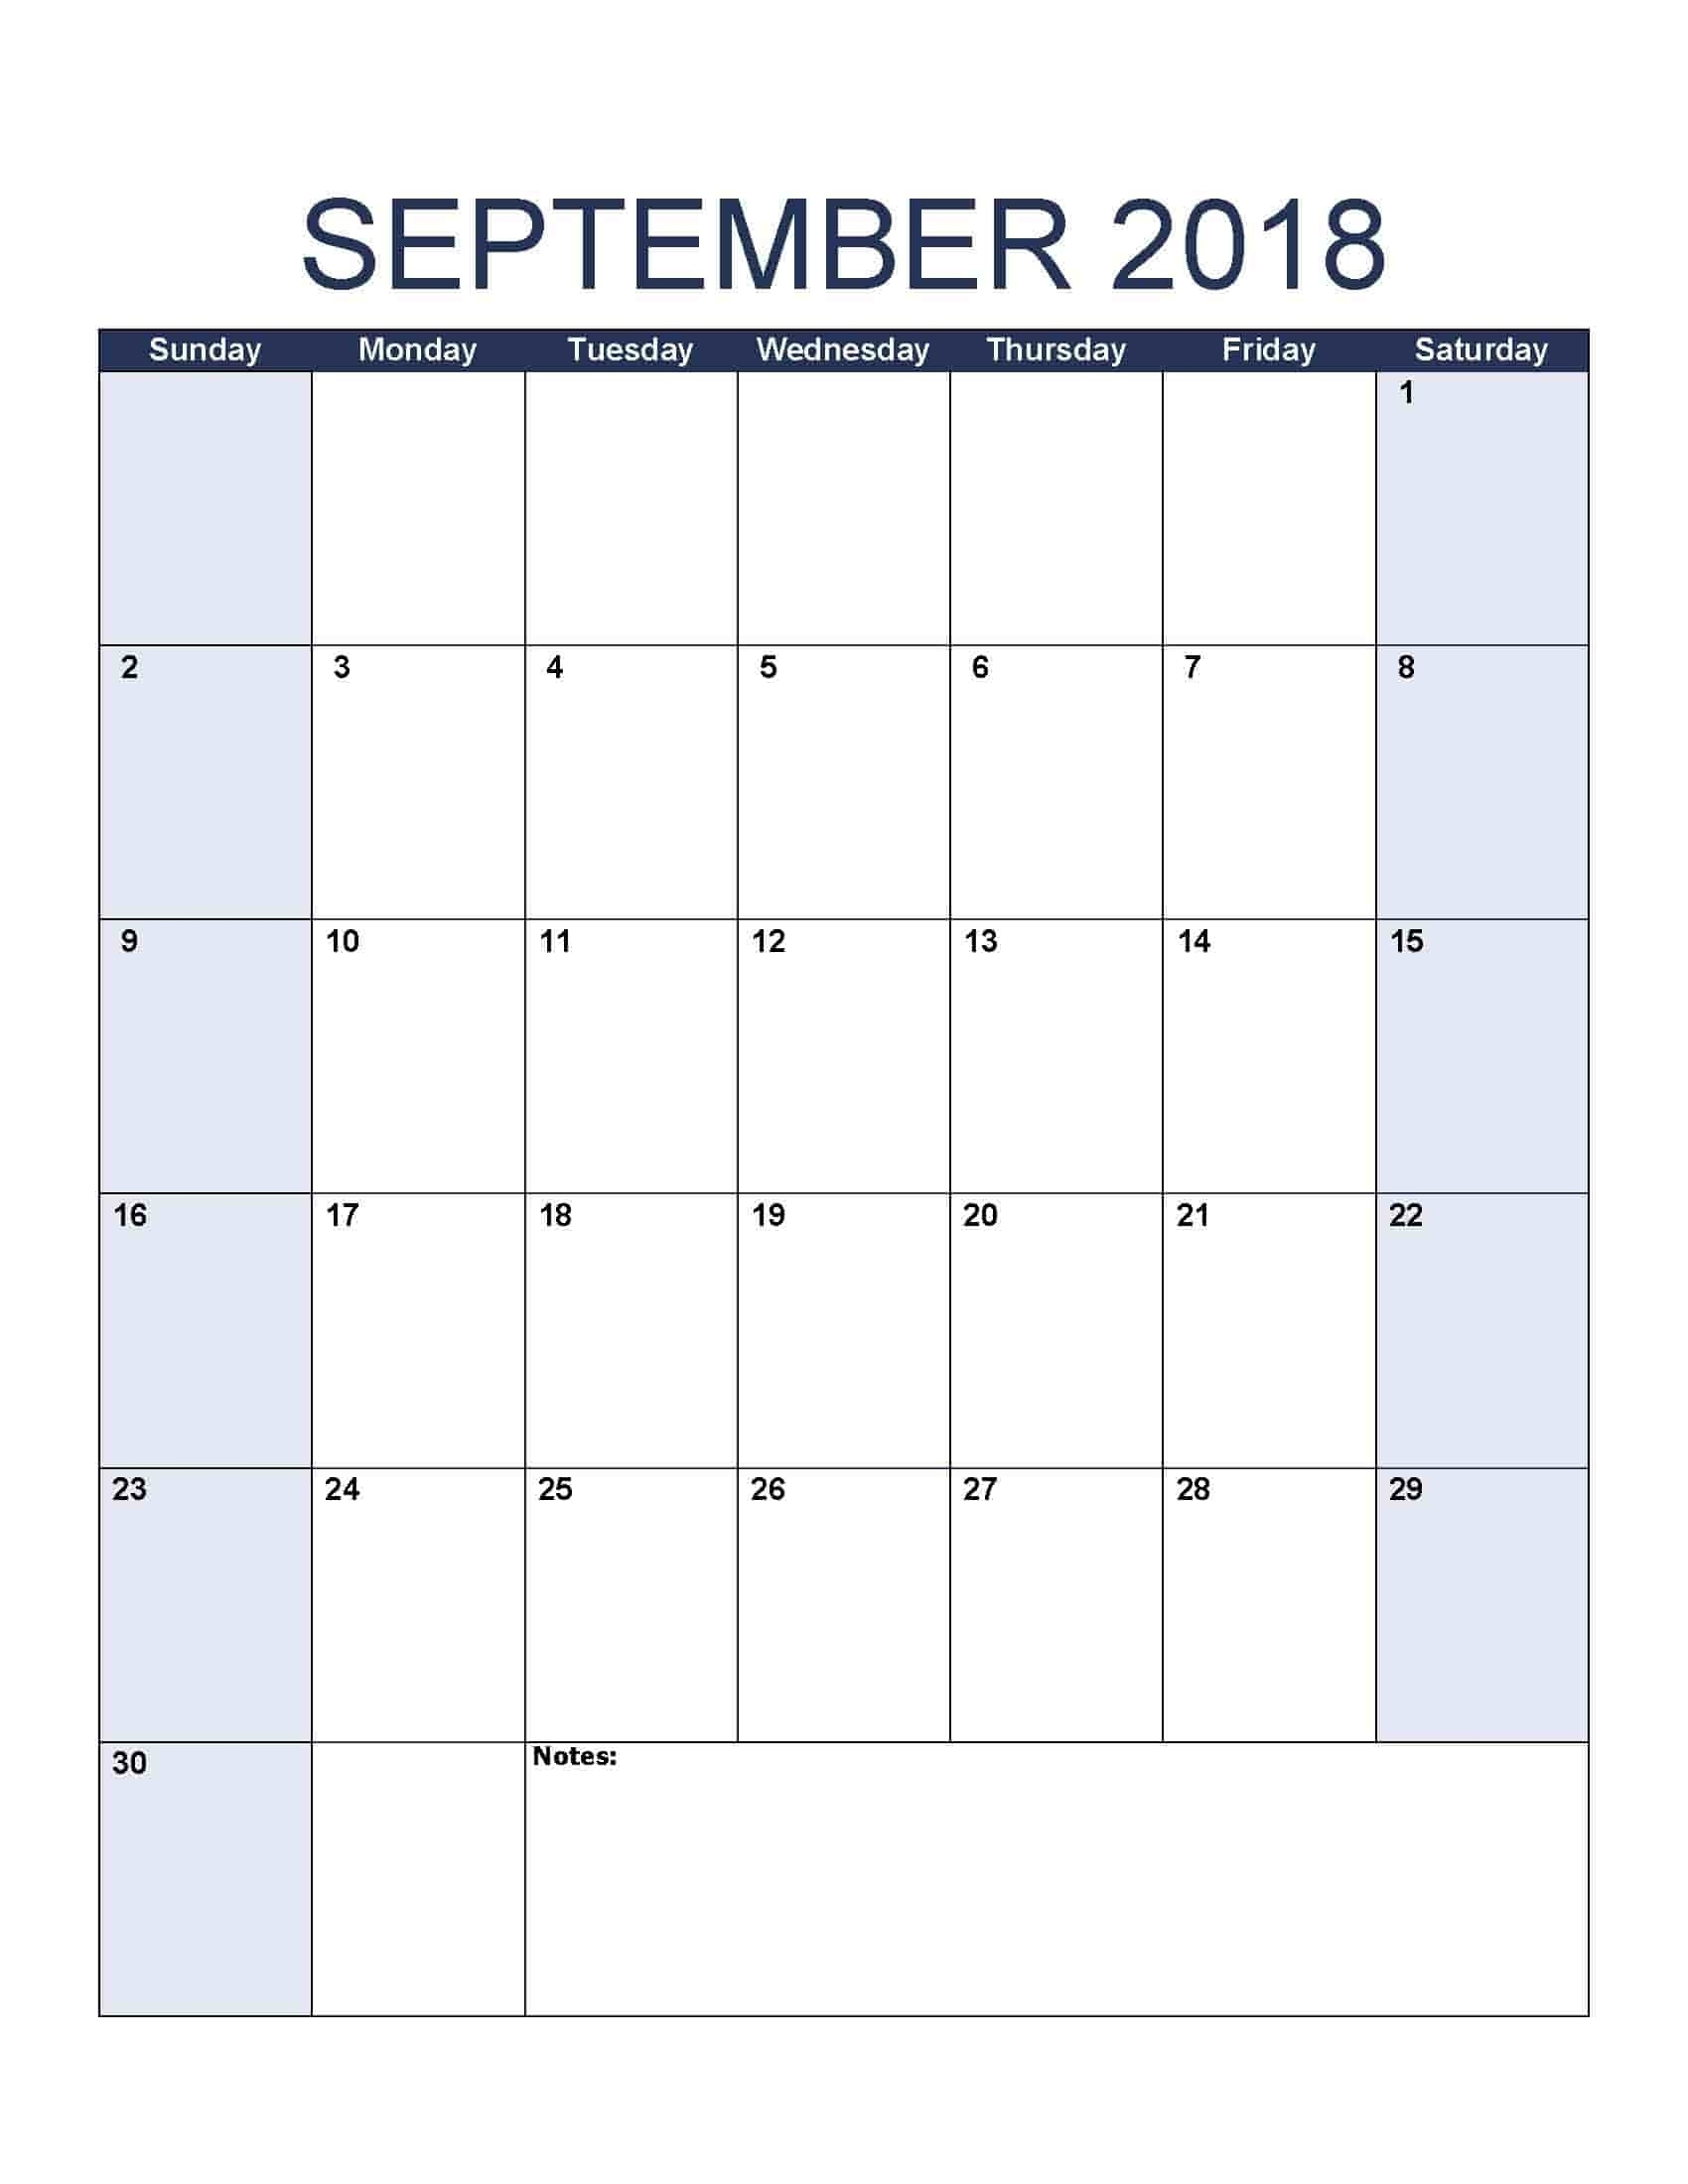 Free Calendars To Print Without Downloading | Template Calendar pertaining to Free Calendars To Print Without Downloading